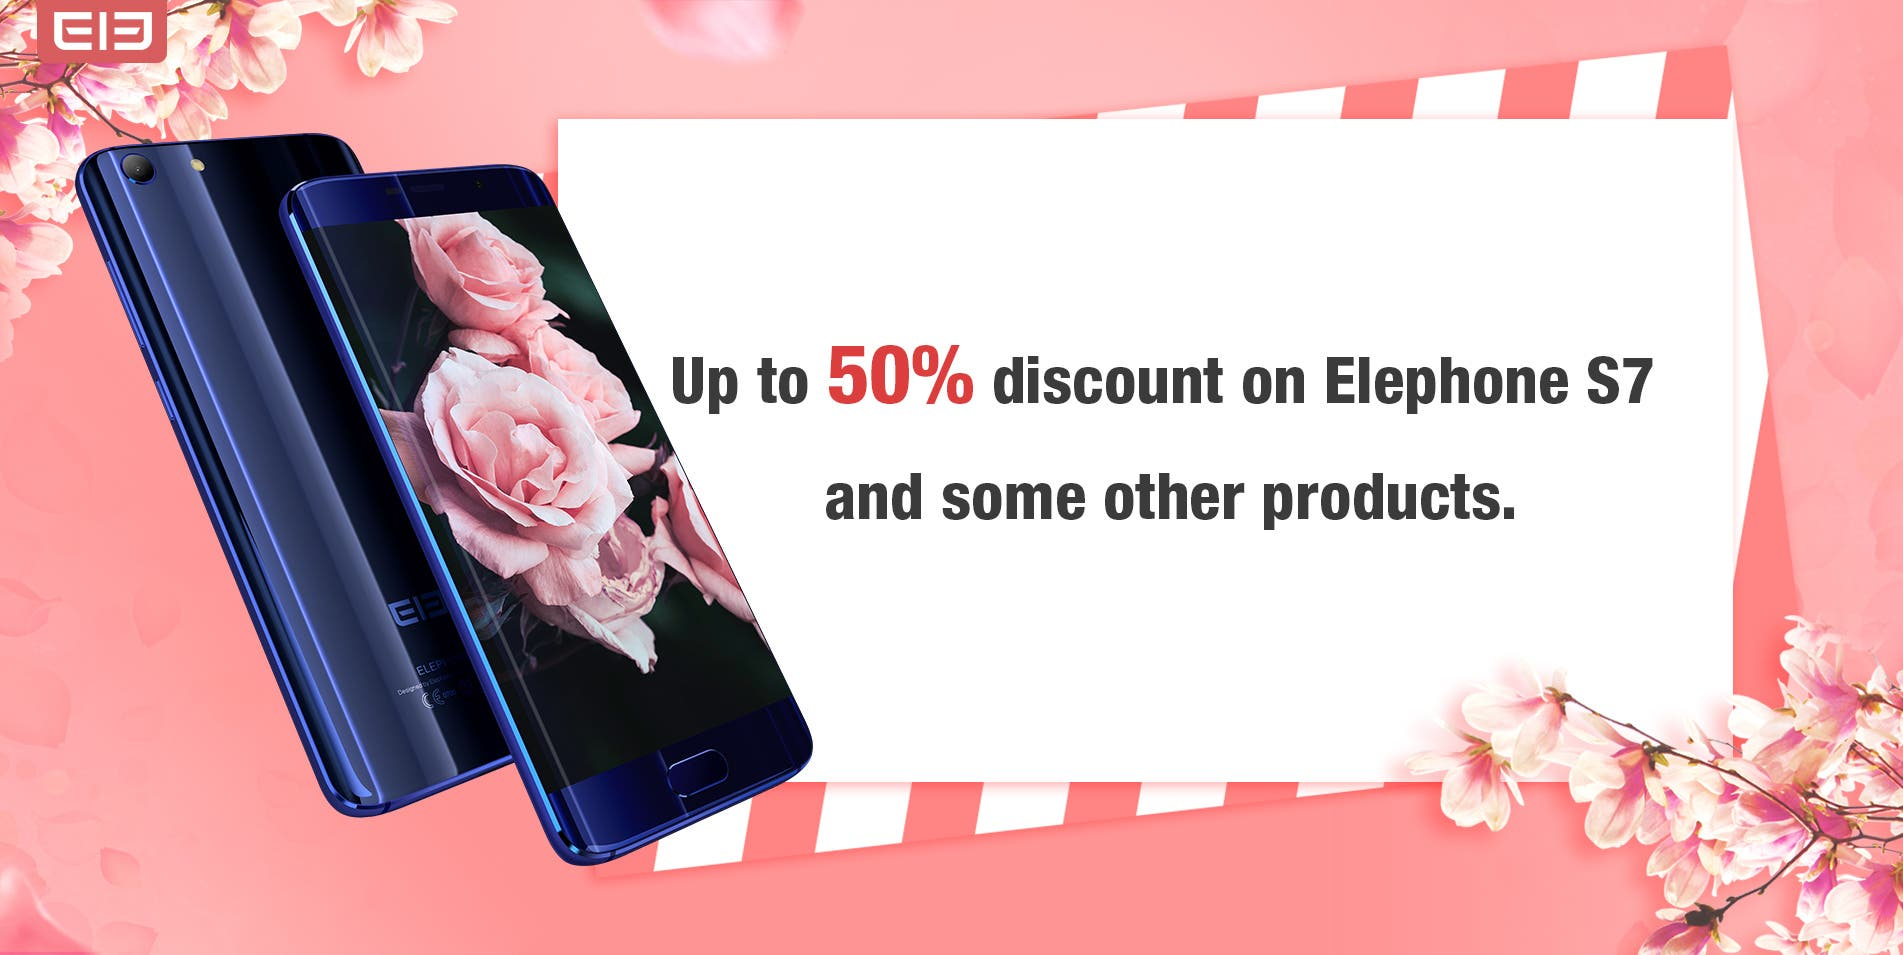 Elephone Women's Day promo